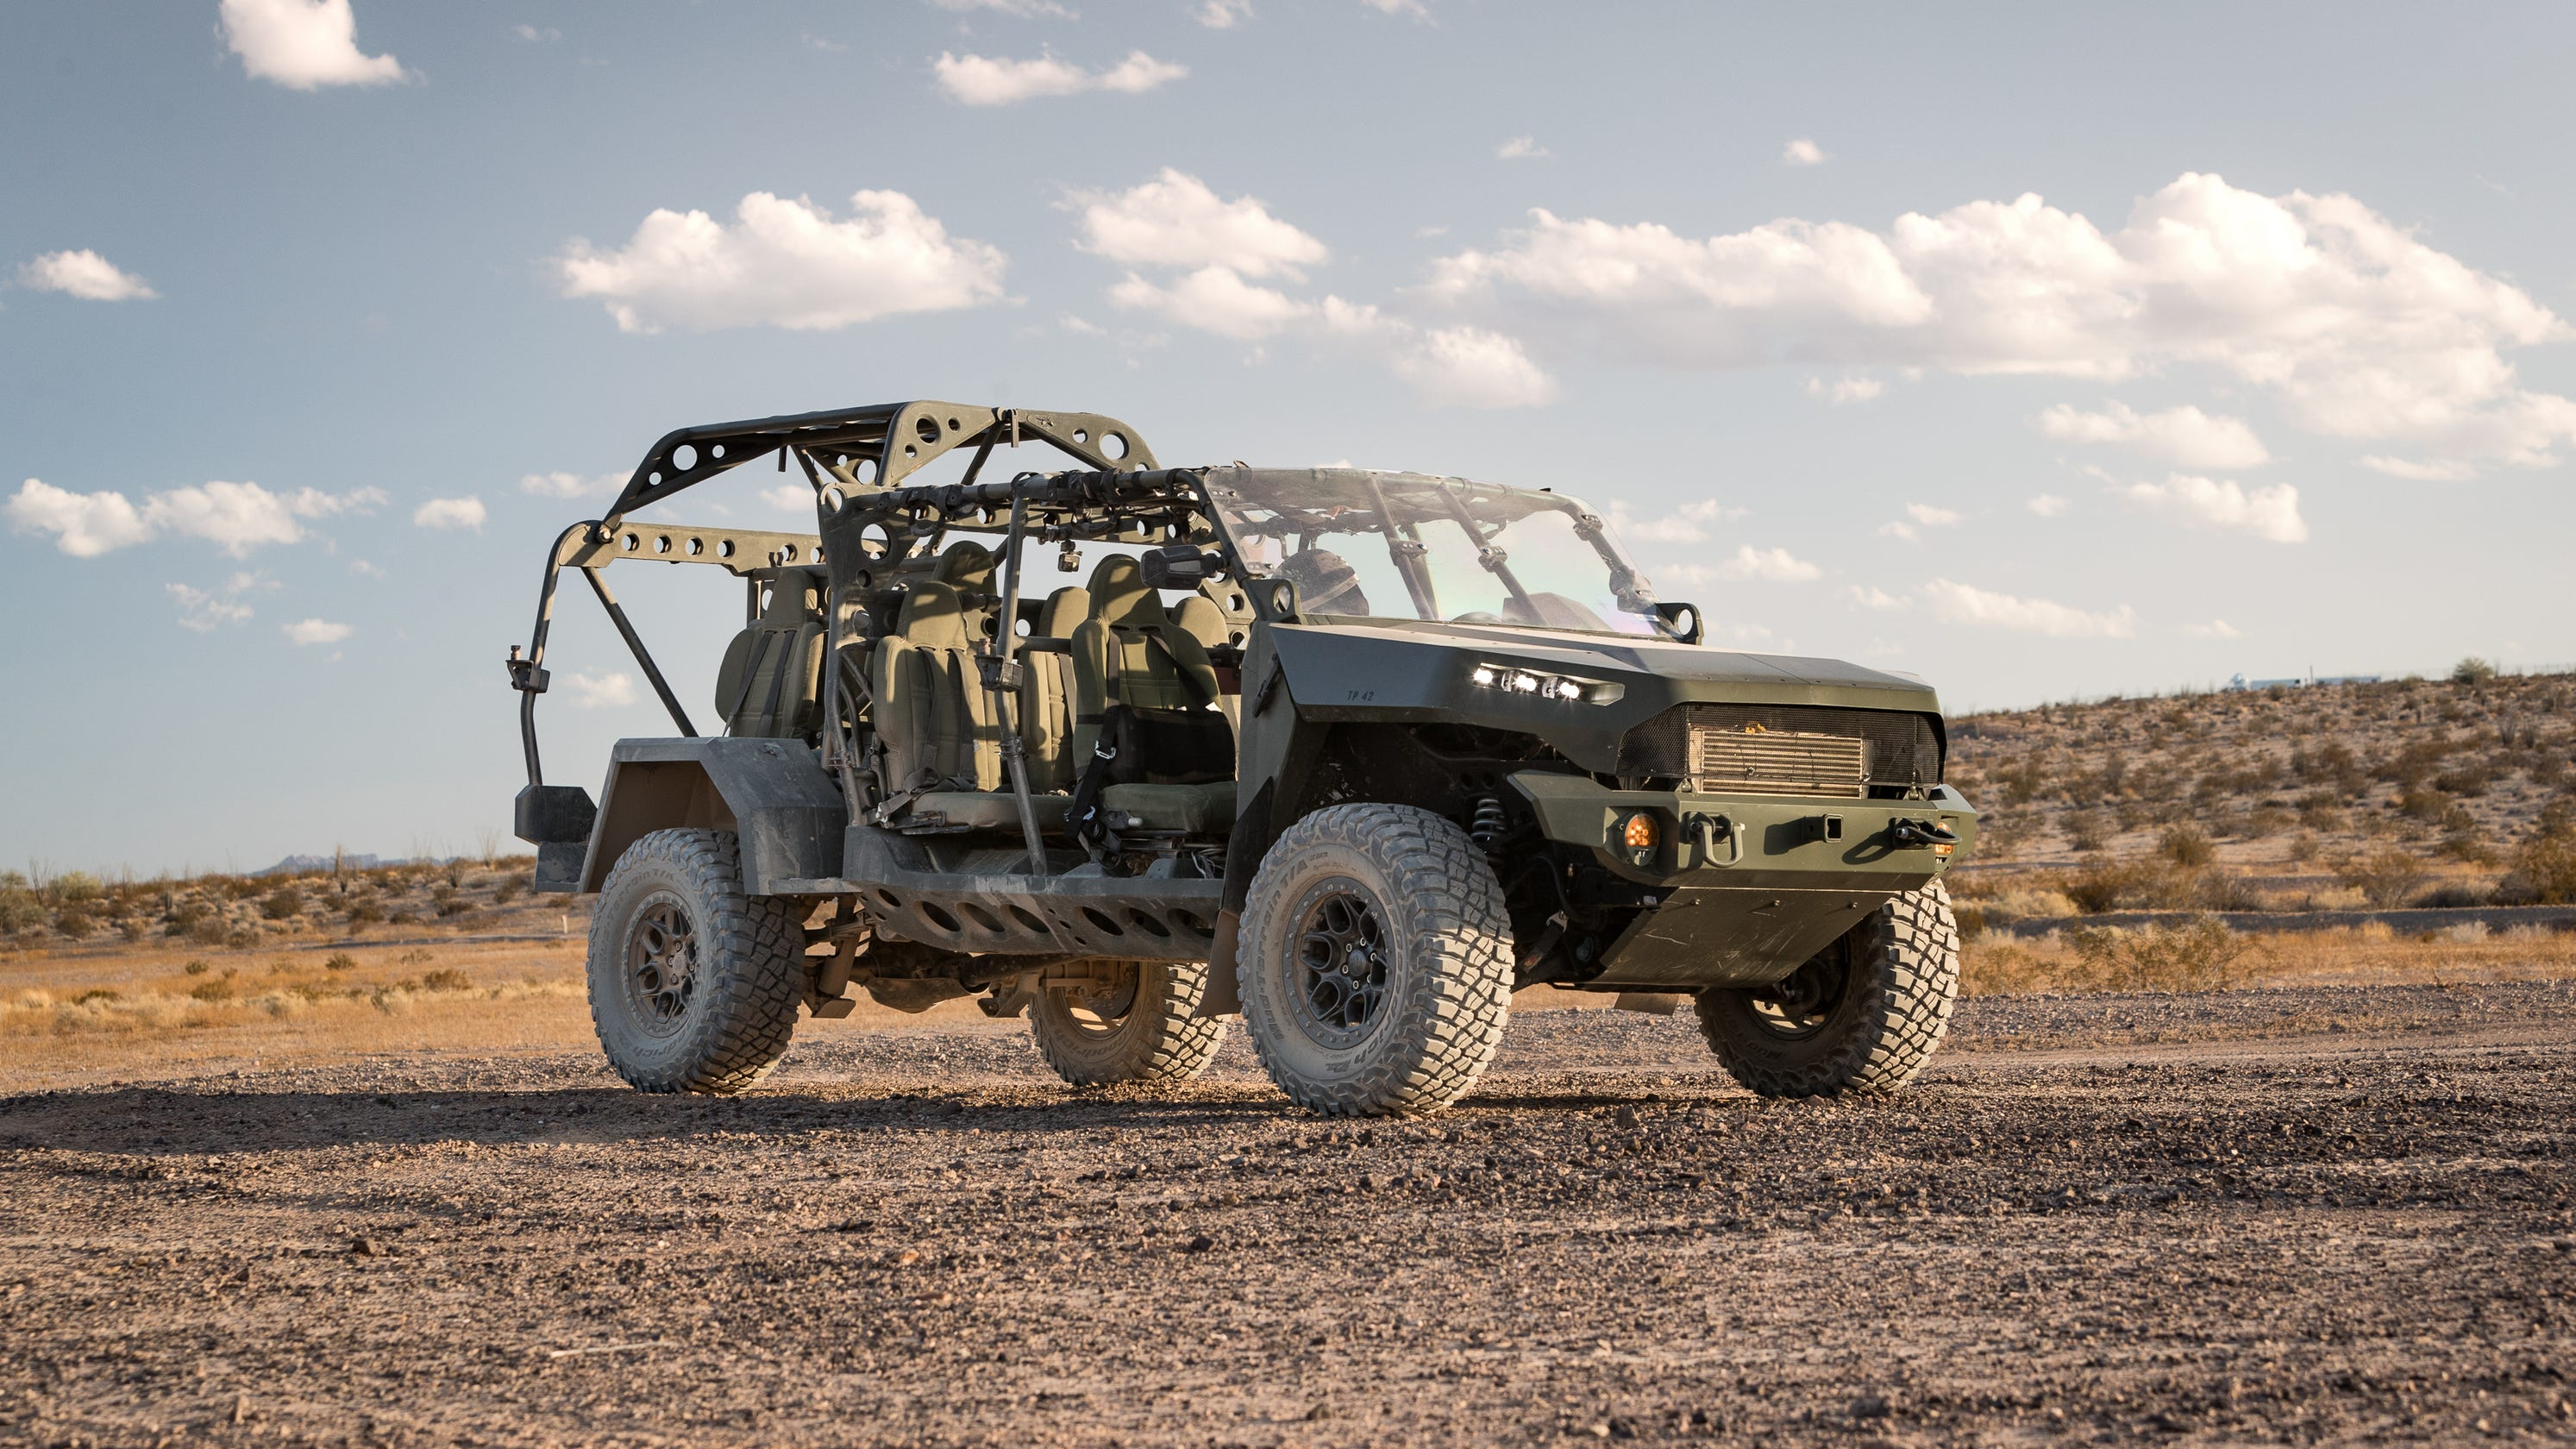 GM military truck could mean billions in defense contracts